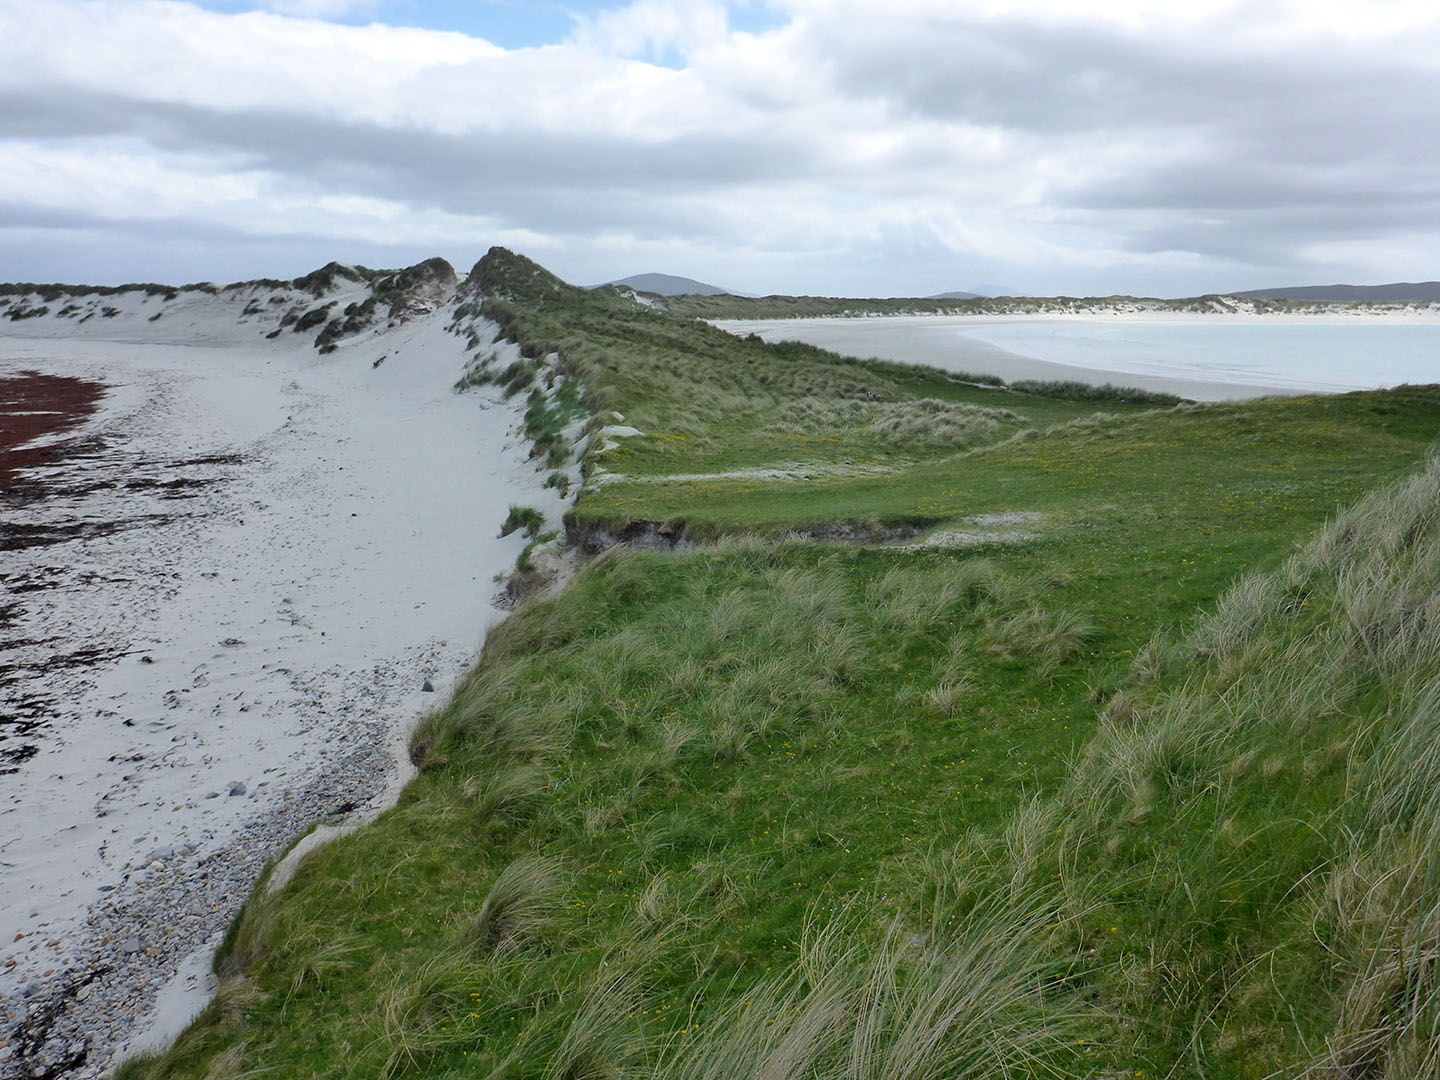 53 Udal peninsula with Traigh Ear & Traigh Iar